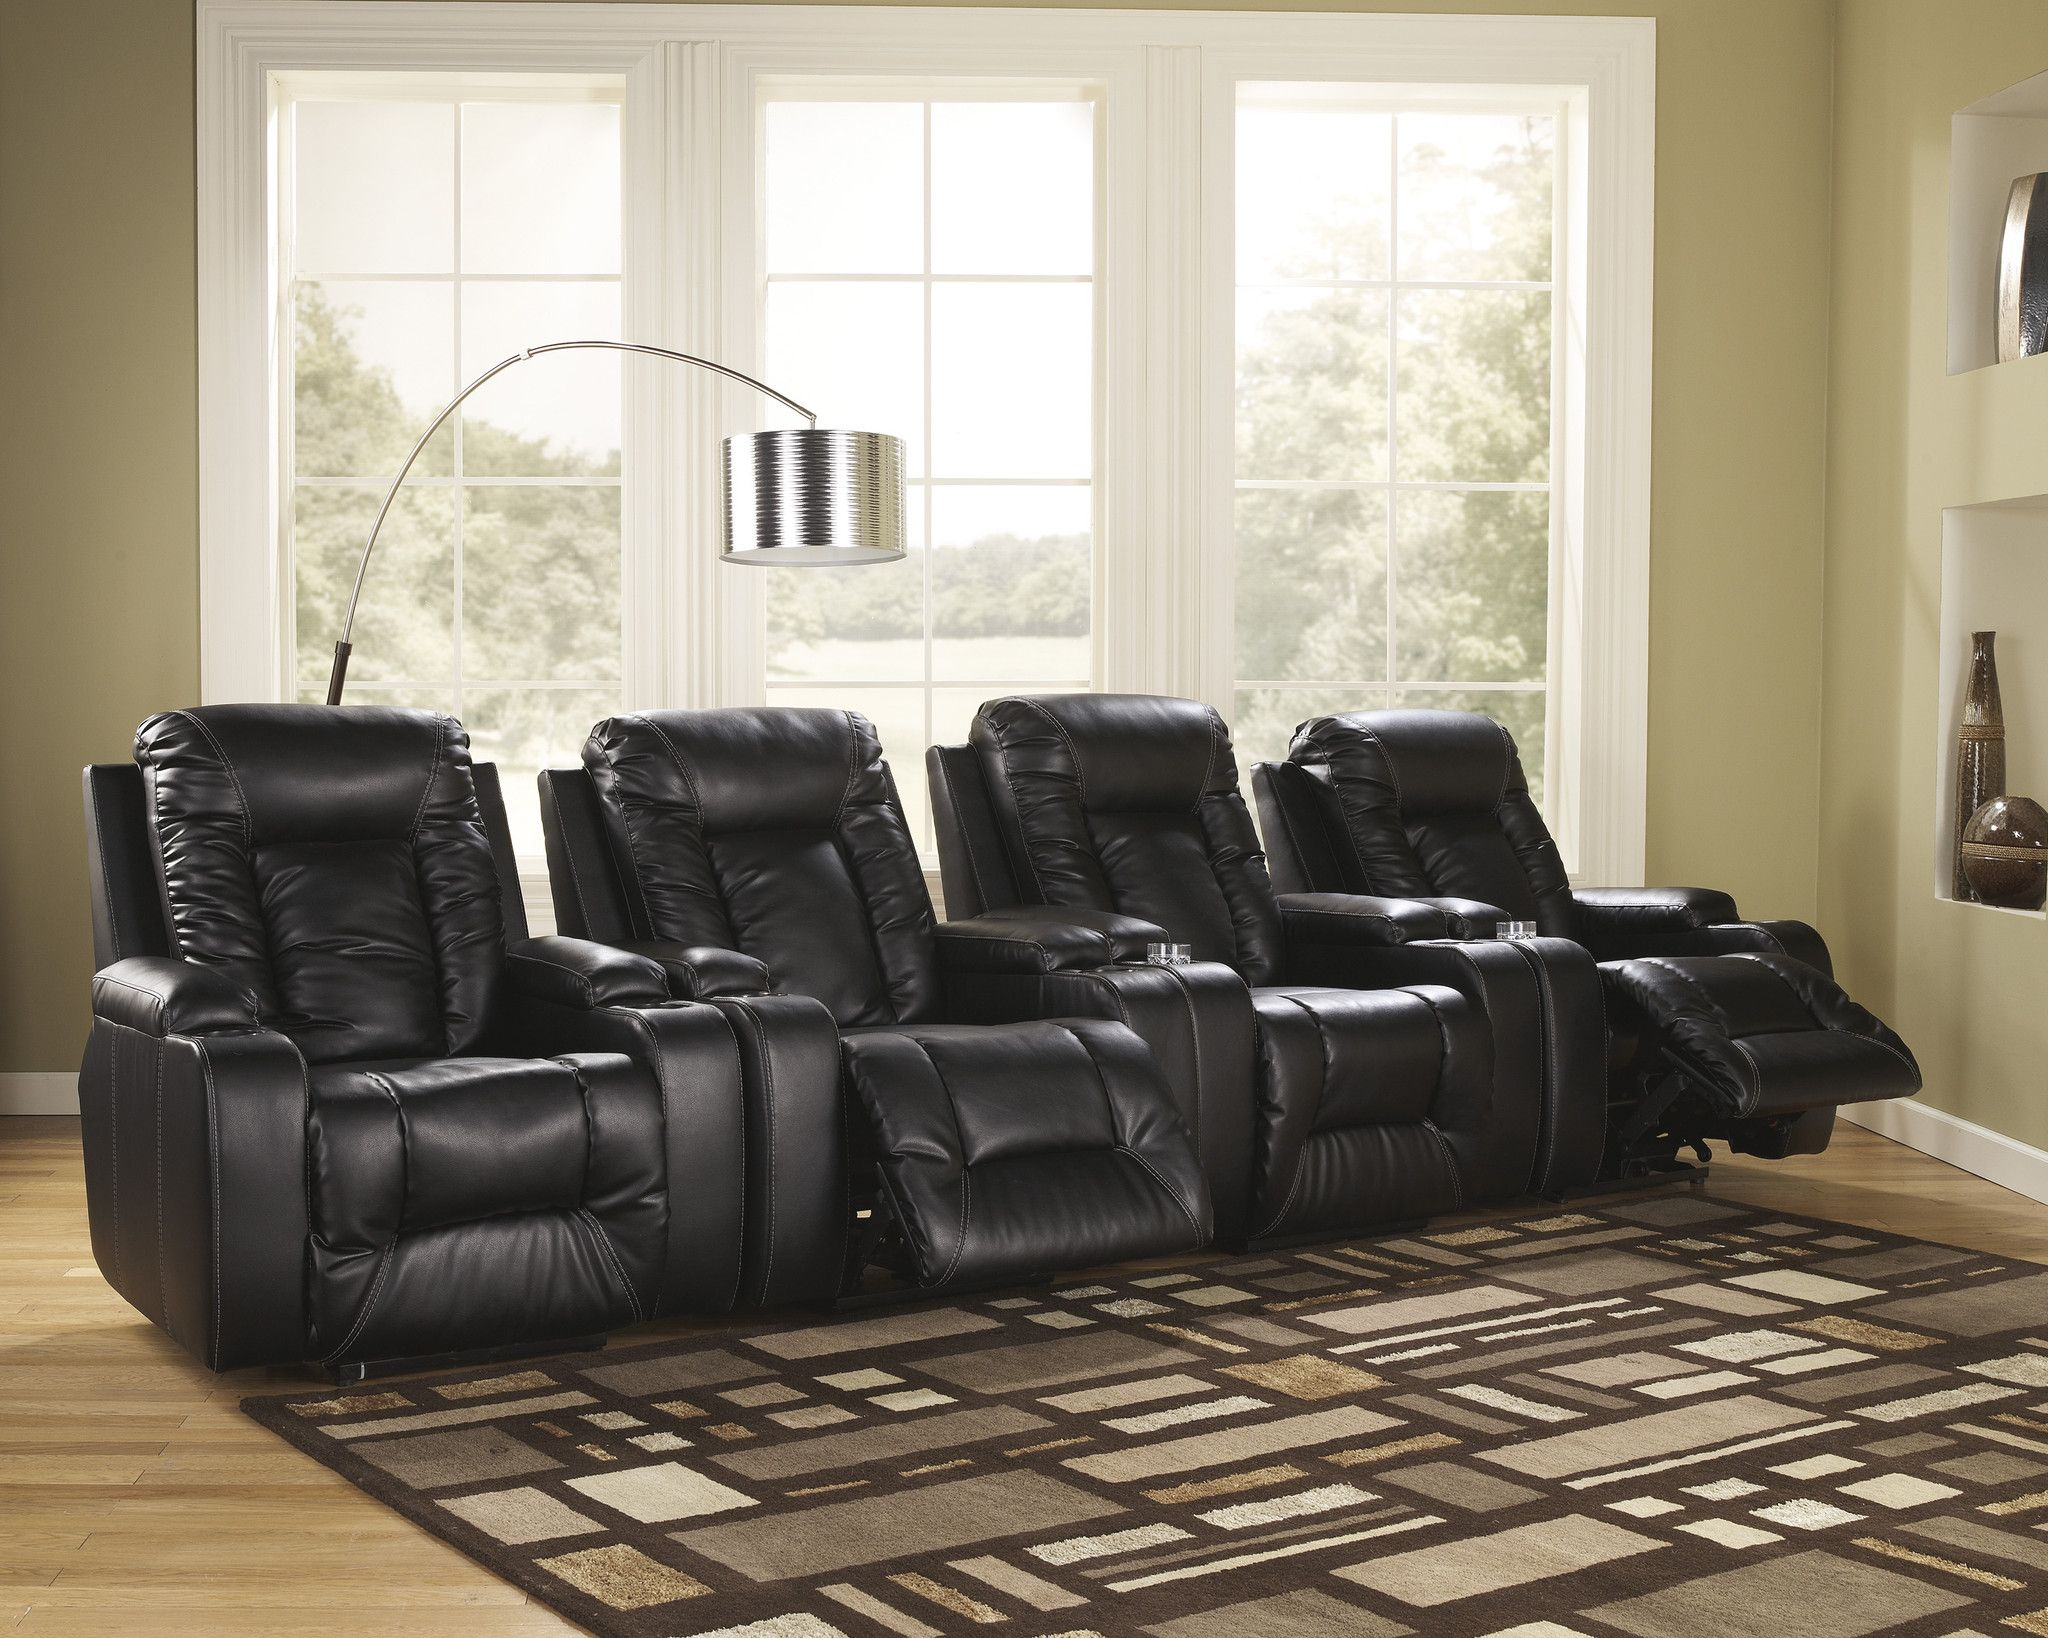 Matinee 4pc Home Theater Power Recliner Set u2013 Outfit My Home : home theater power recliners - islam-shia.org